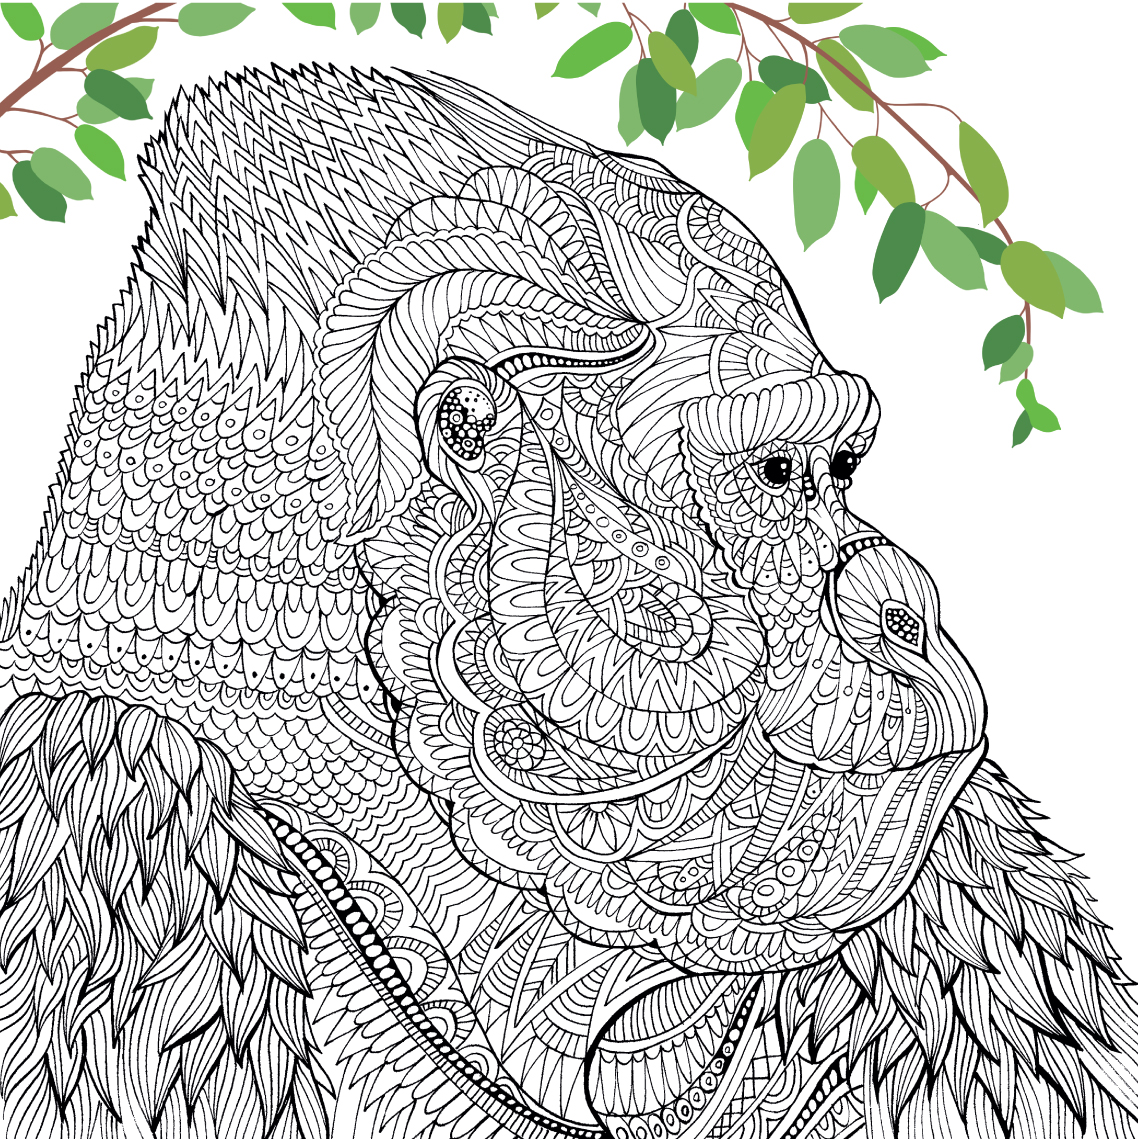 The Menagerie Free Pattern Downloads WHSmith Blog